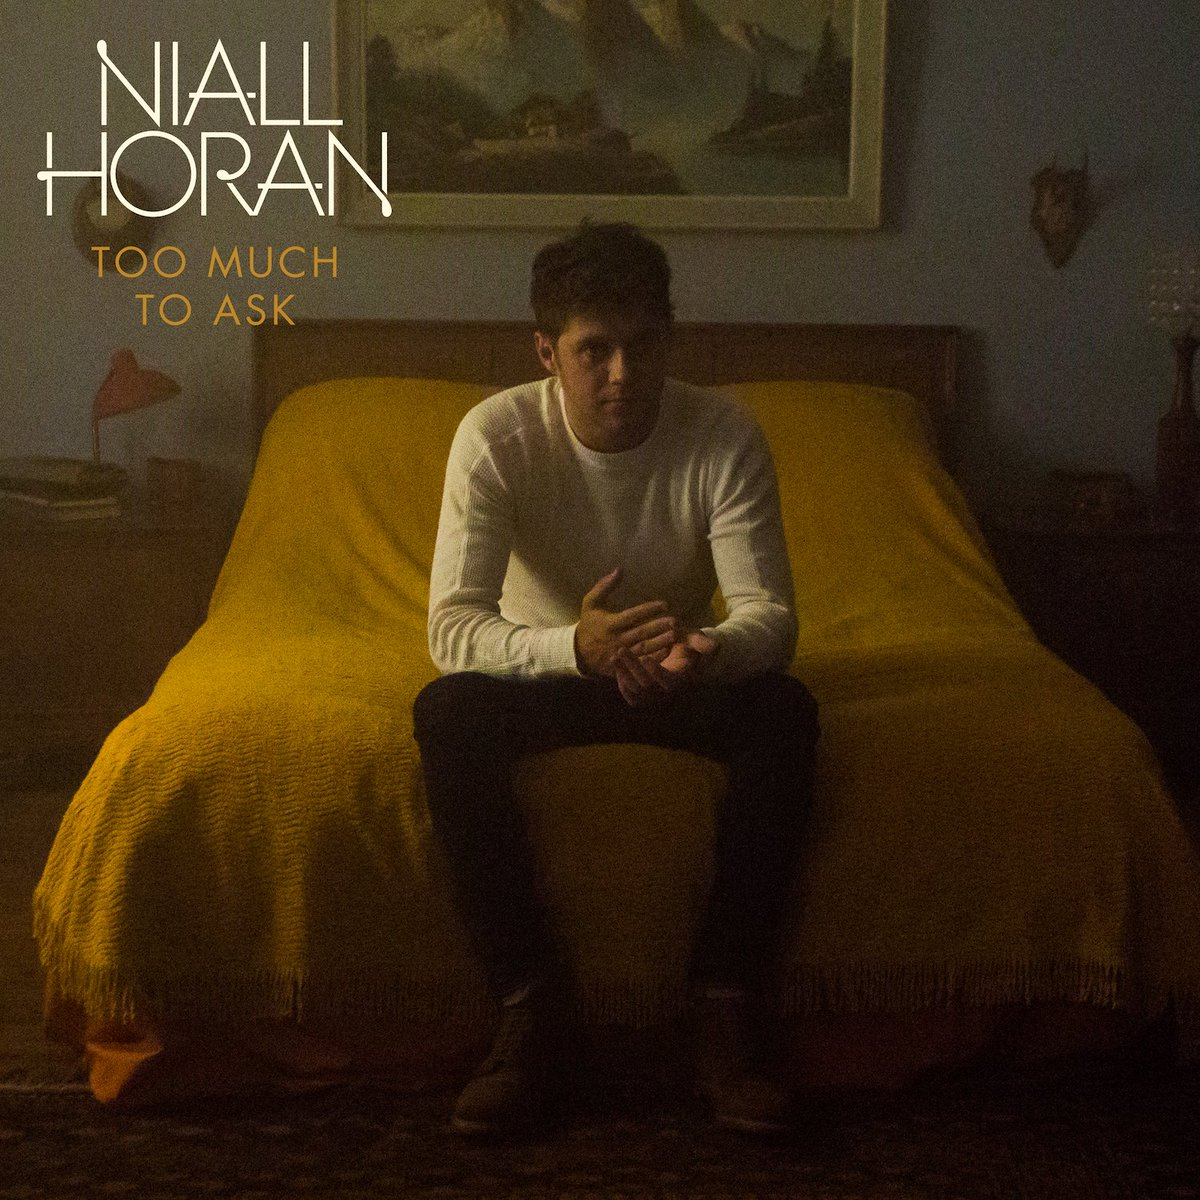 .@NiallOfficial's new single #TooMuchToAsk is out now! 🖤🎶 Get ready for all the feels here: https://t.co/QZ83GSBiSp